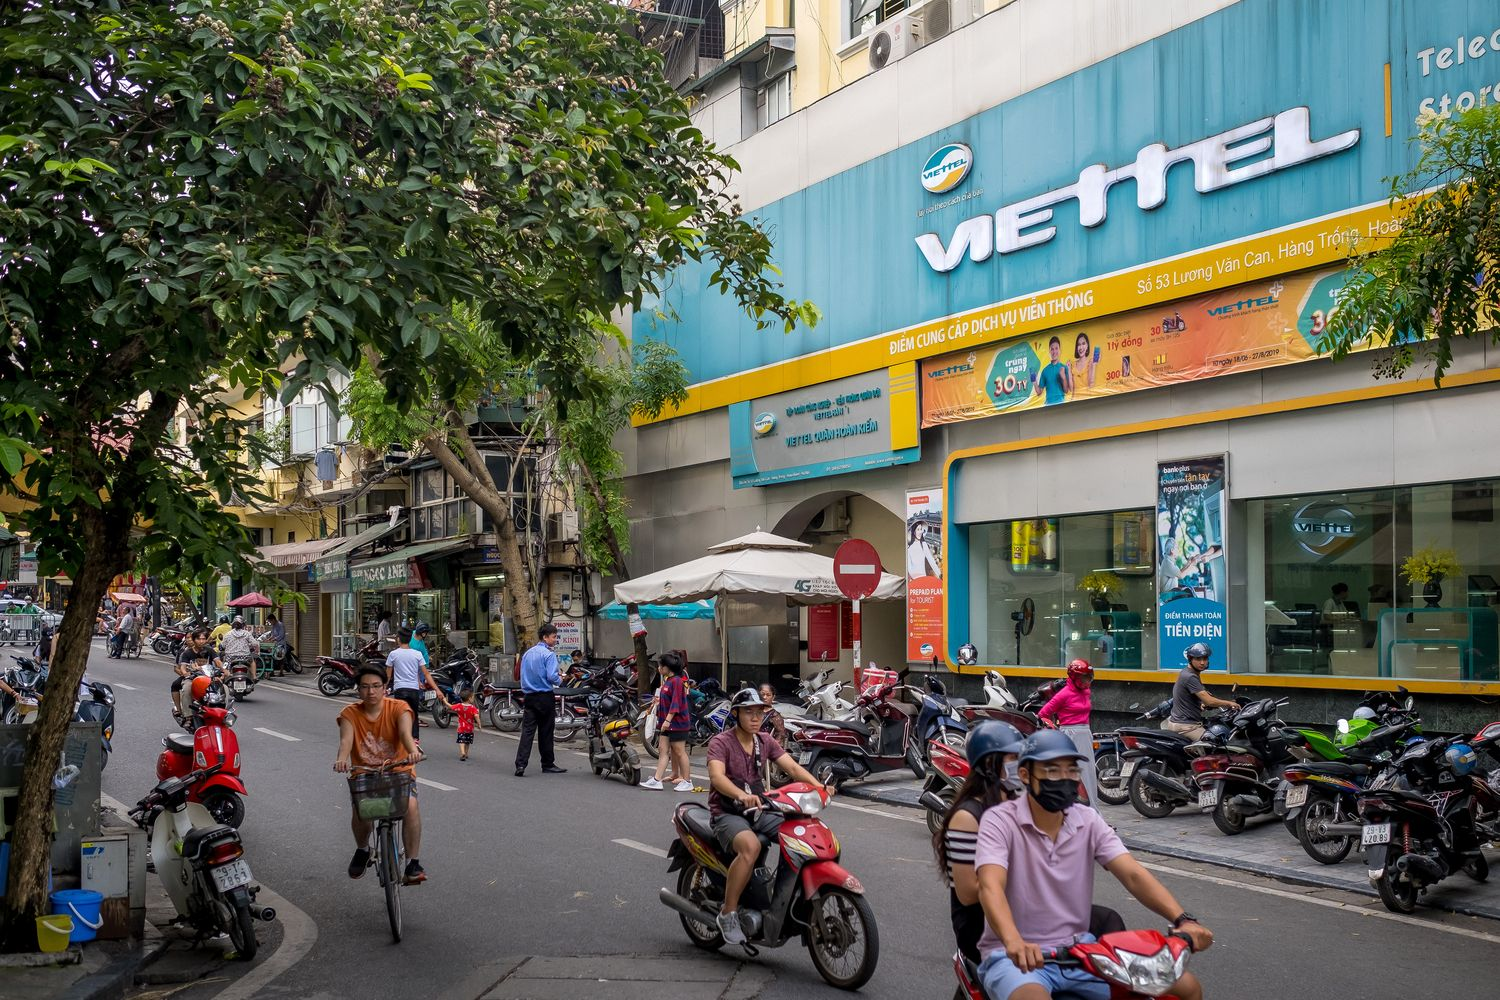 Vietnam quietly avoids Huawei in building 5G network